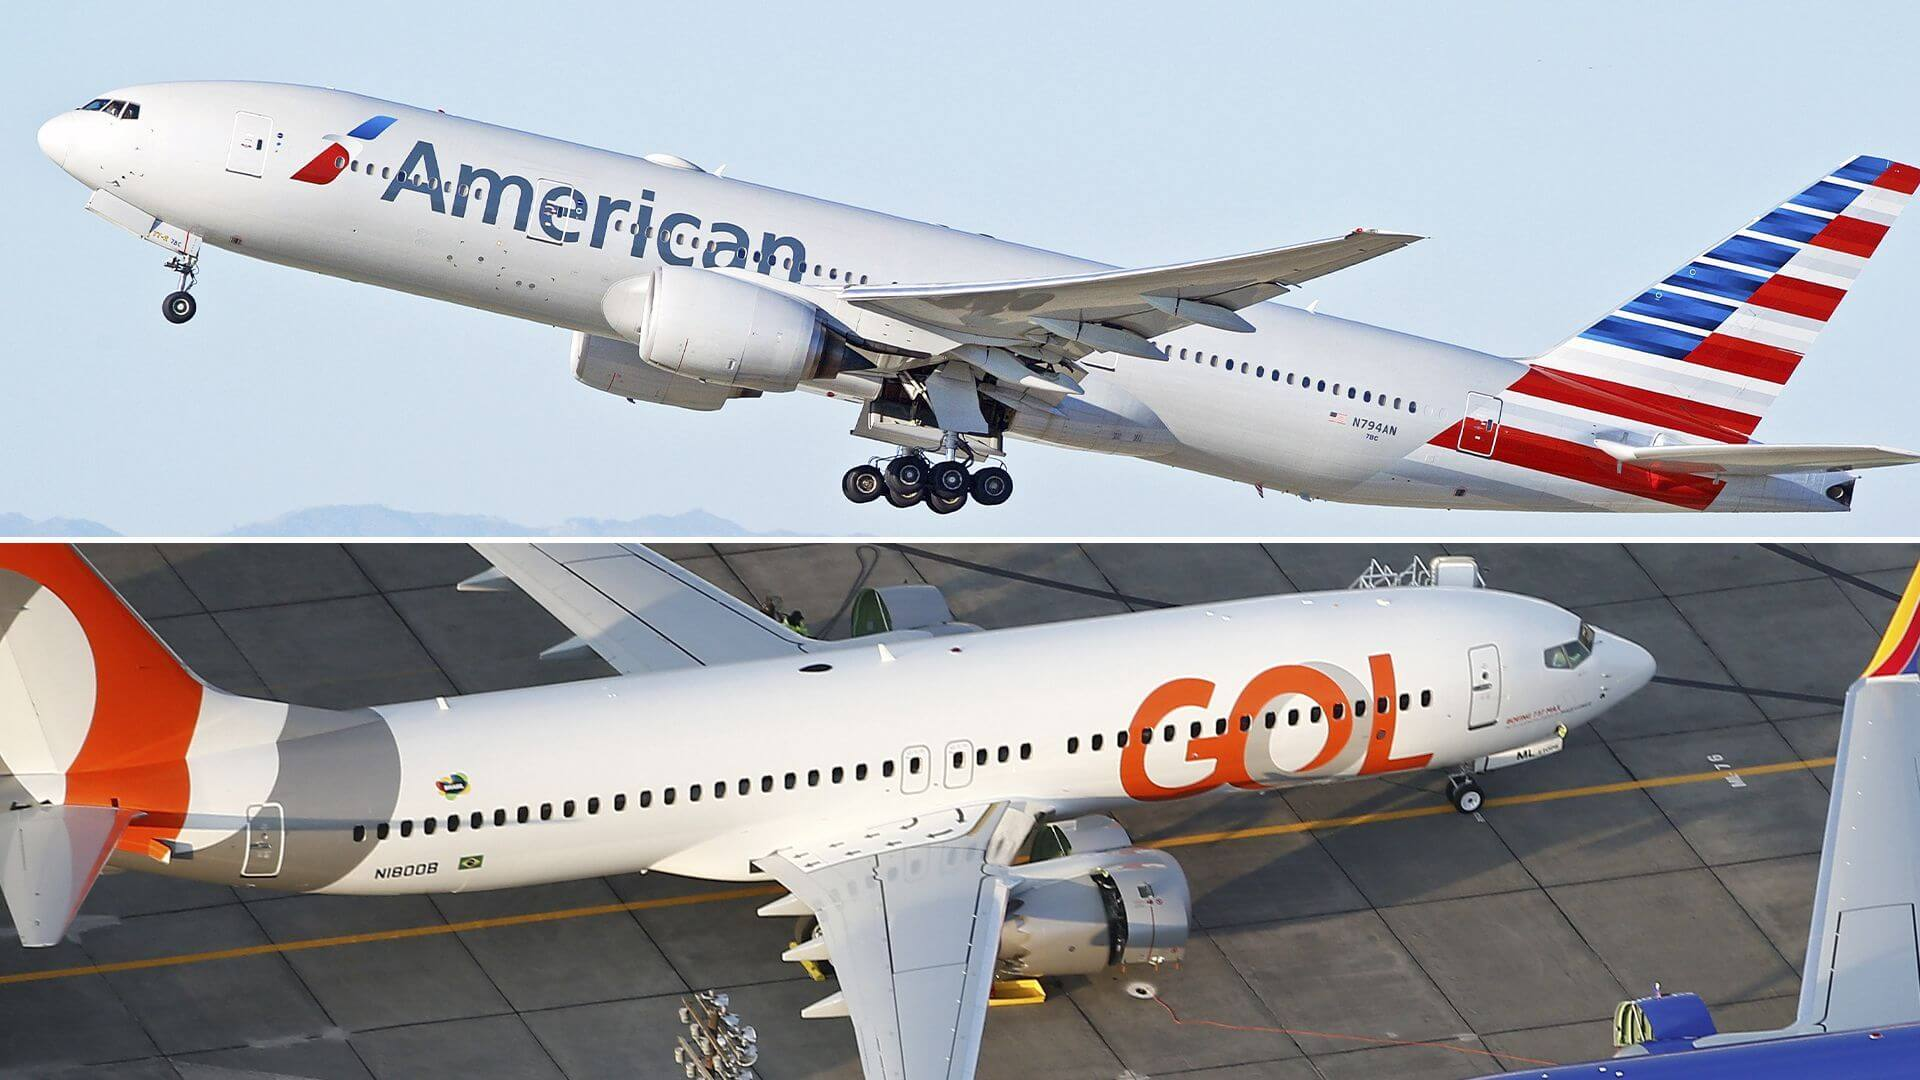 Brazil's GOL and American Airlines announce codeshare agreement